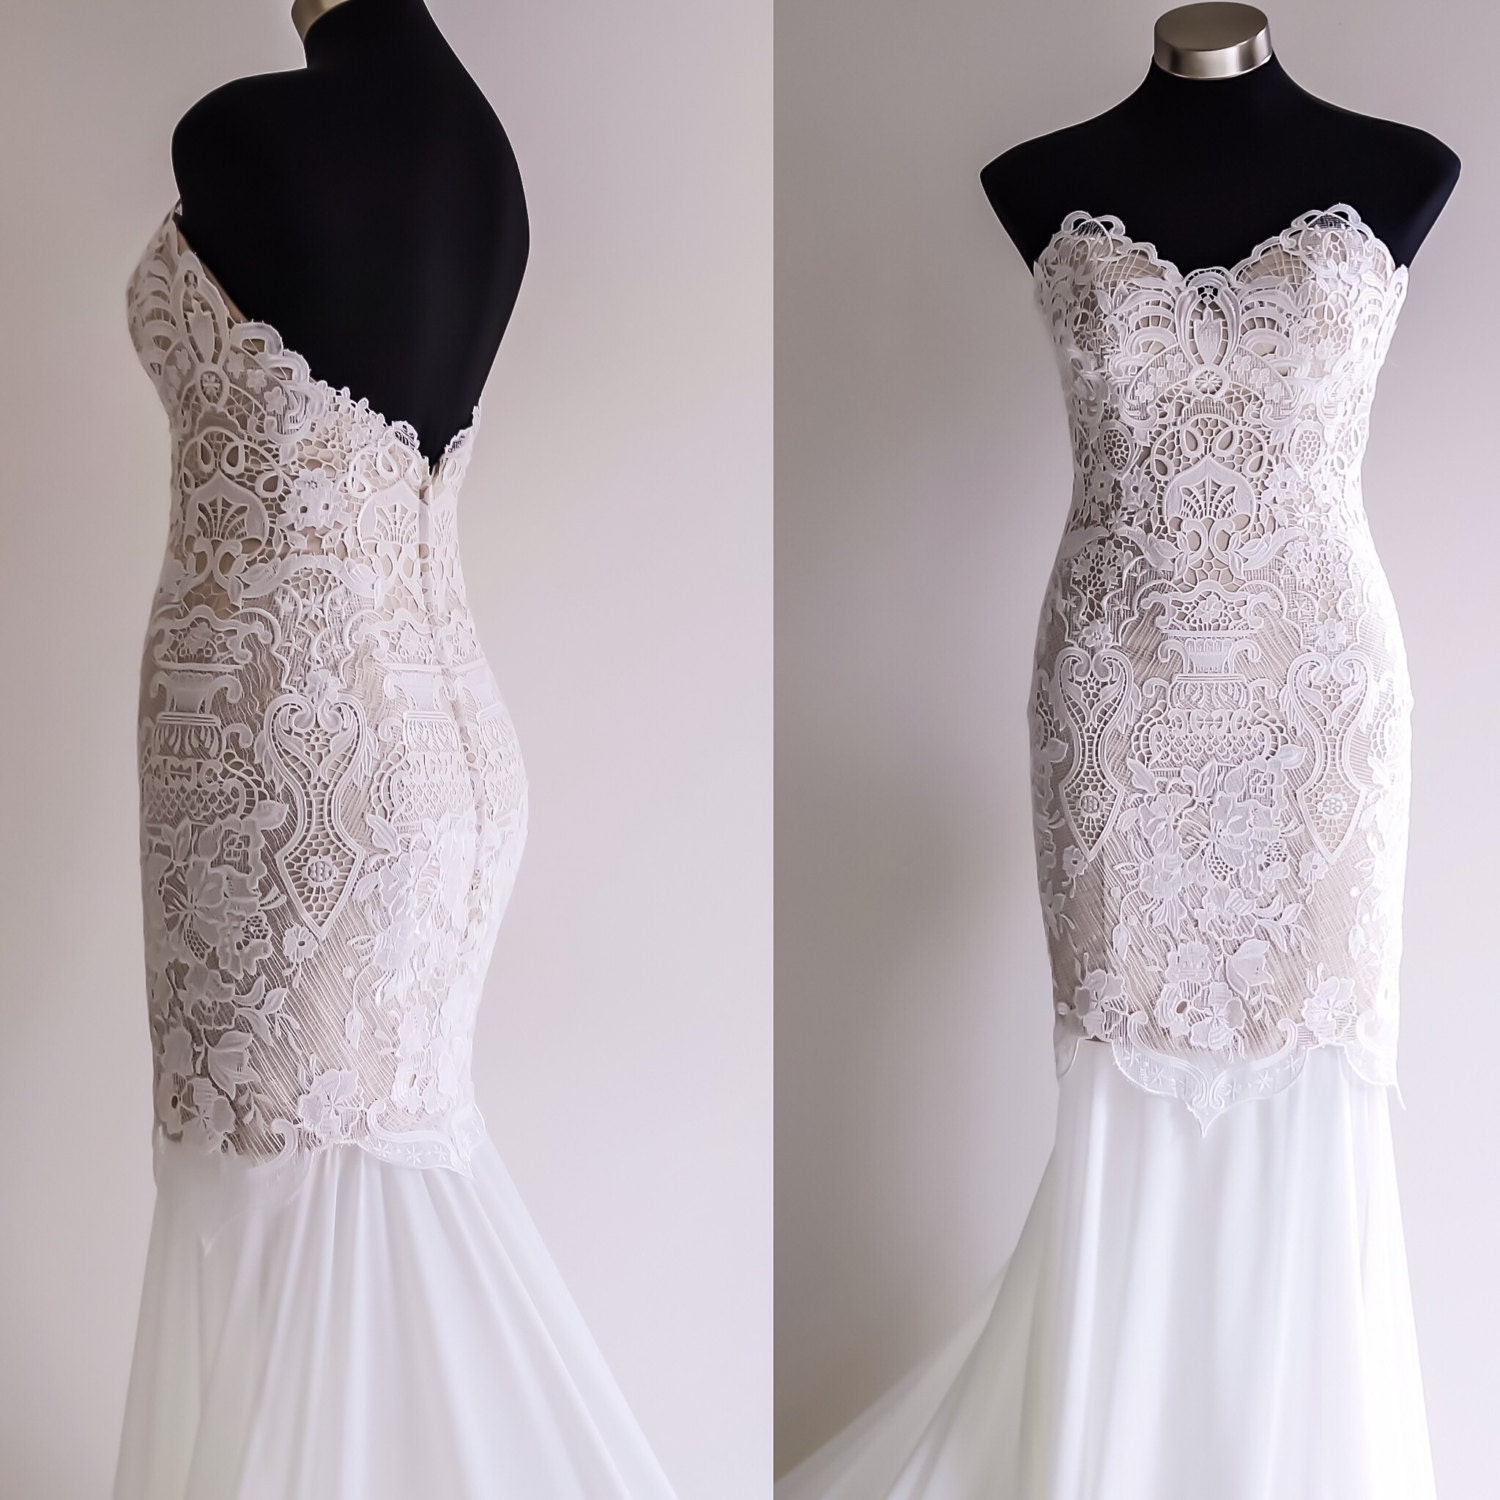 Fit and flare wedding dress lace wedding by silkbrides on etsy for Lace fit flare wedding dress